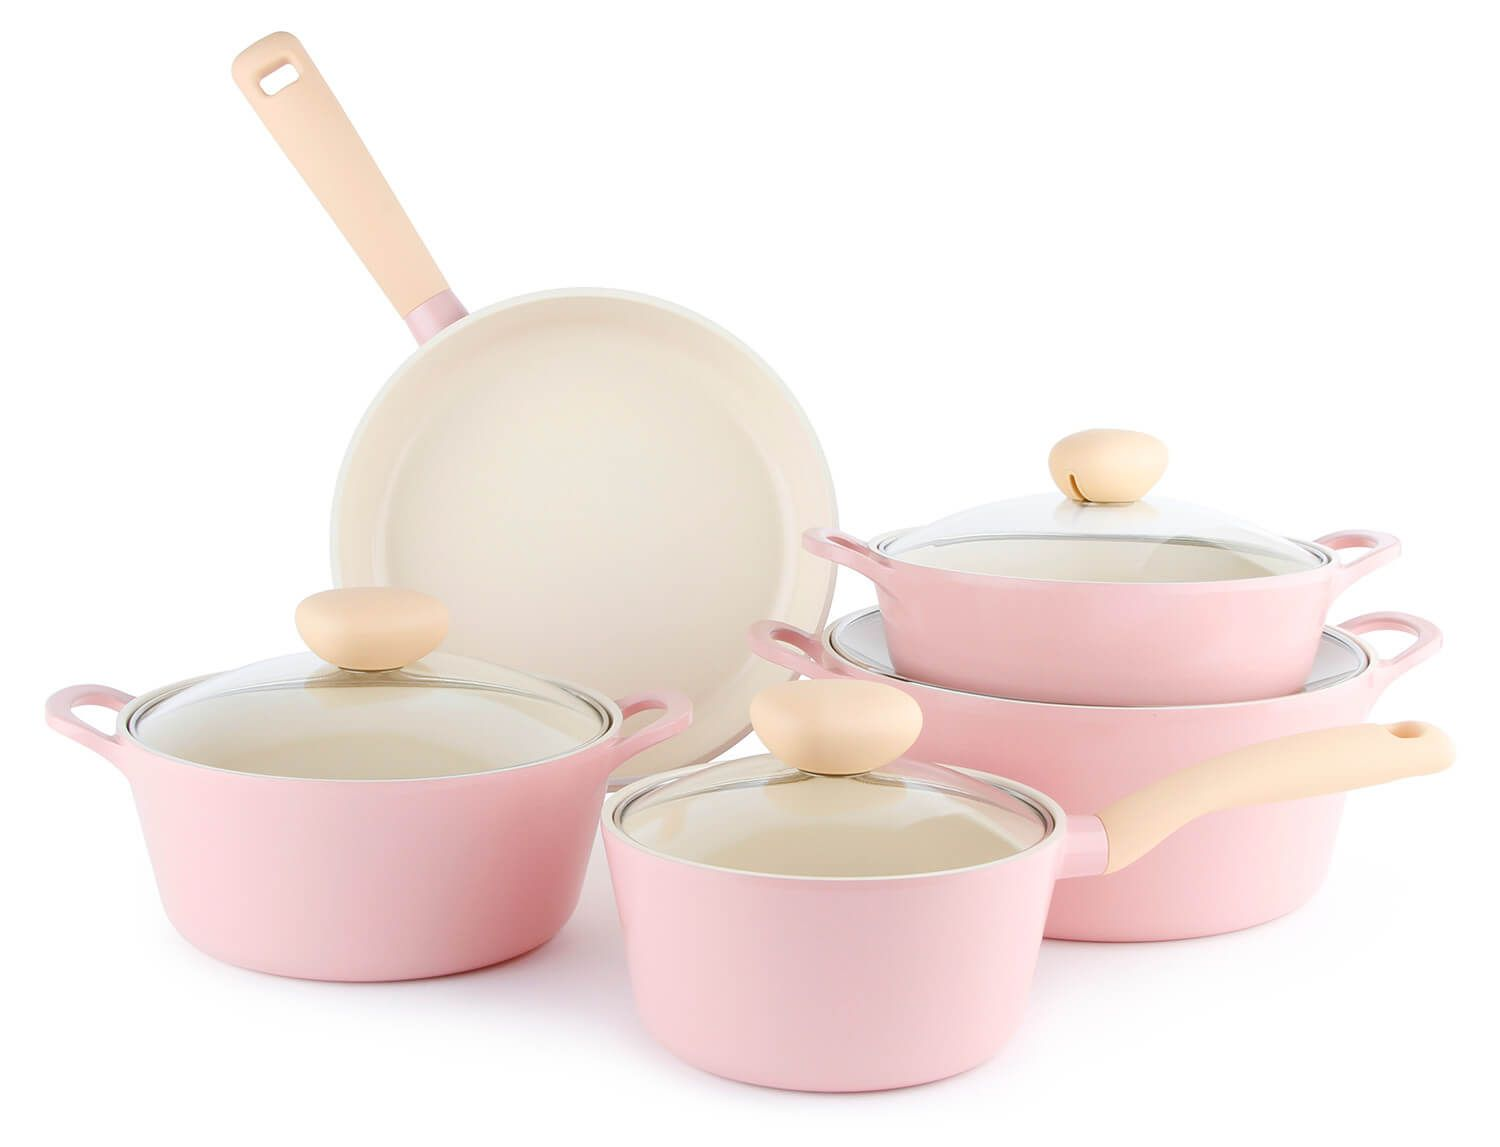 Neoflam Retro Ceramic Cookware Review & Giveaway | Cookware, Retro ...